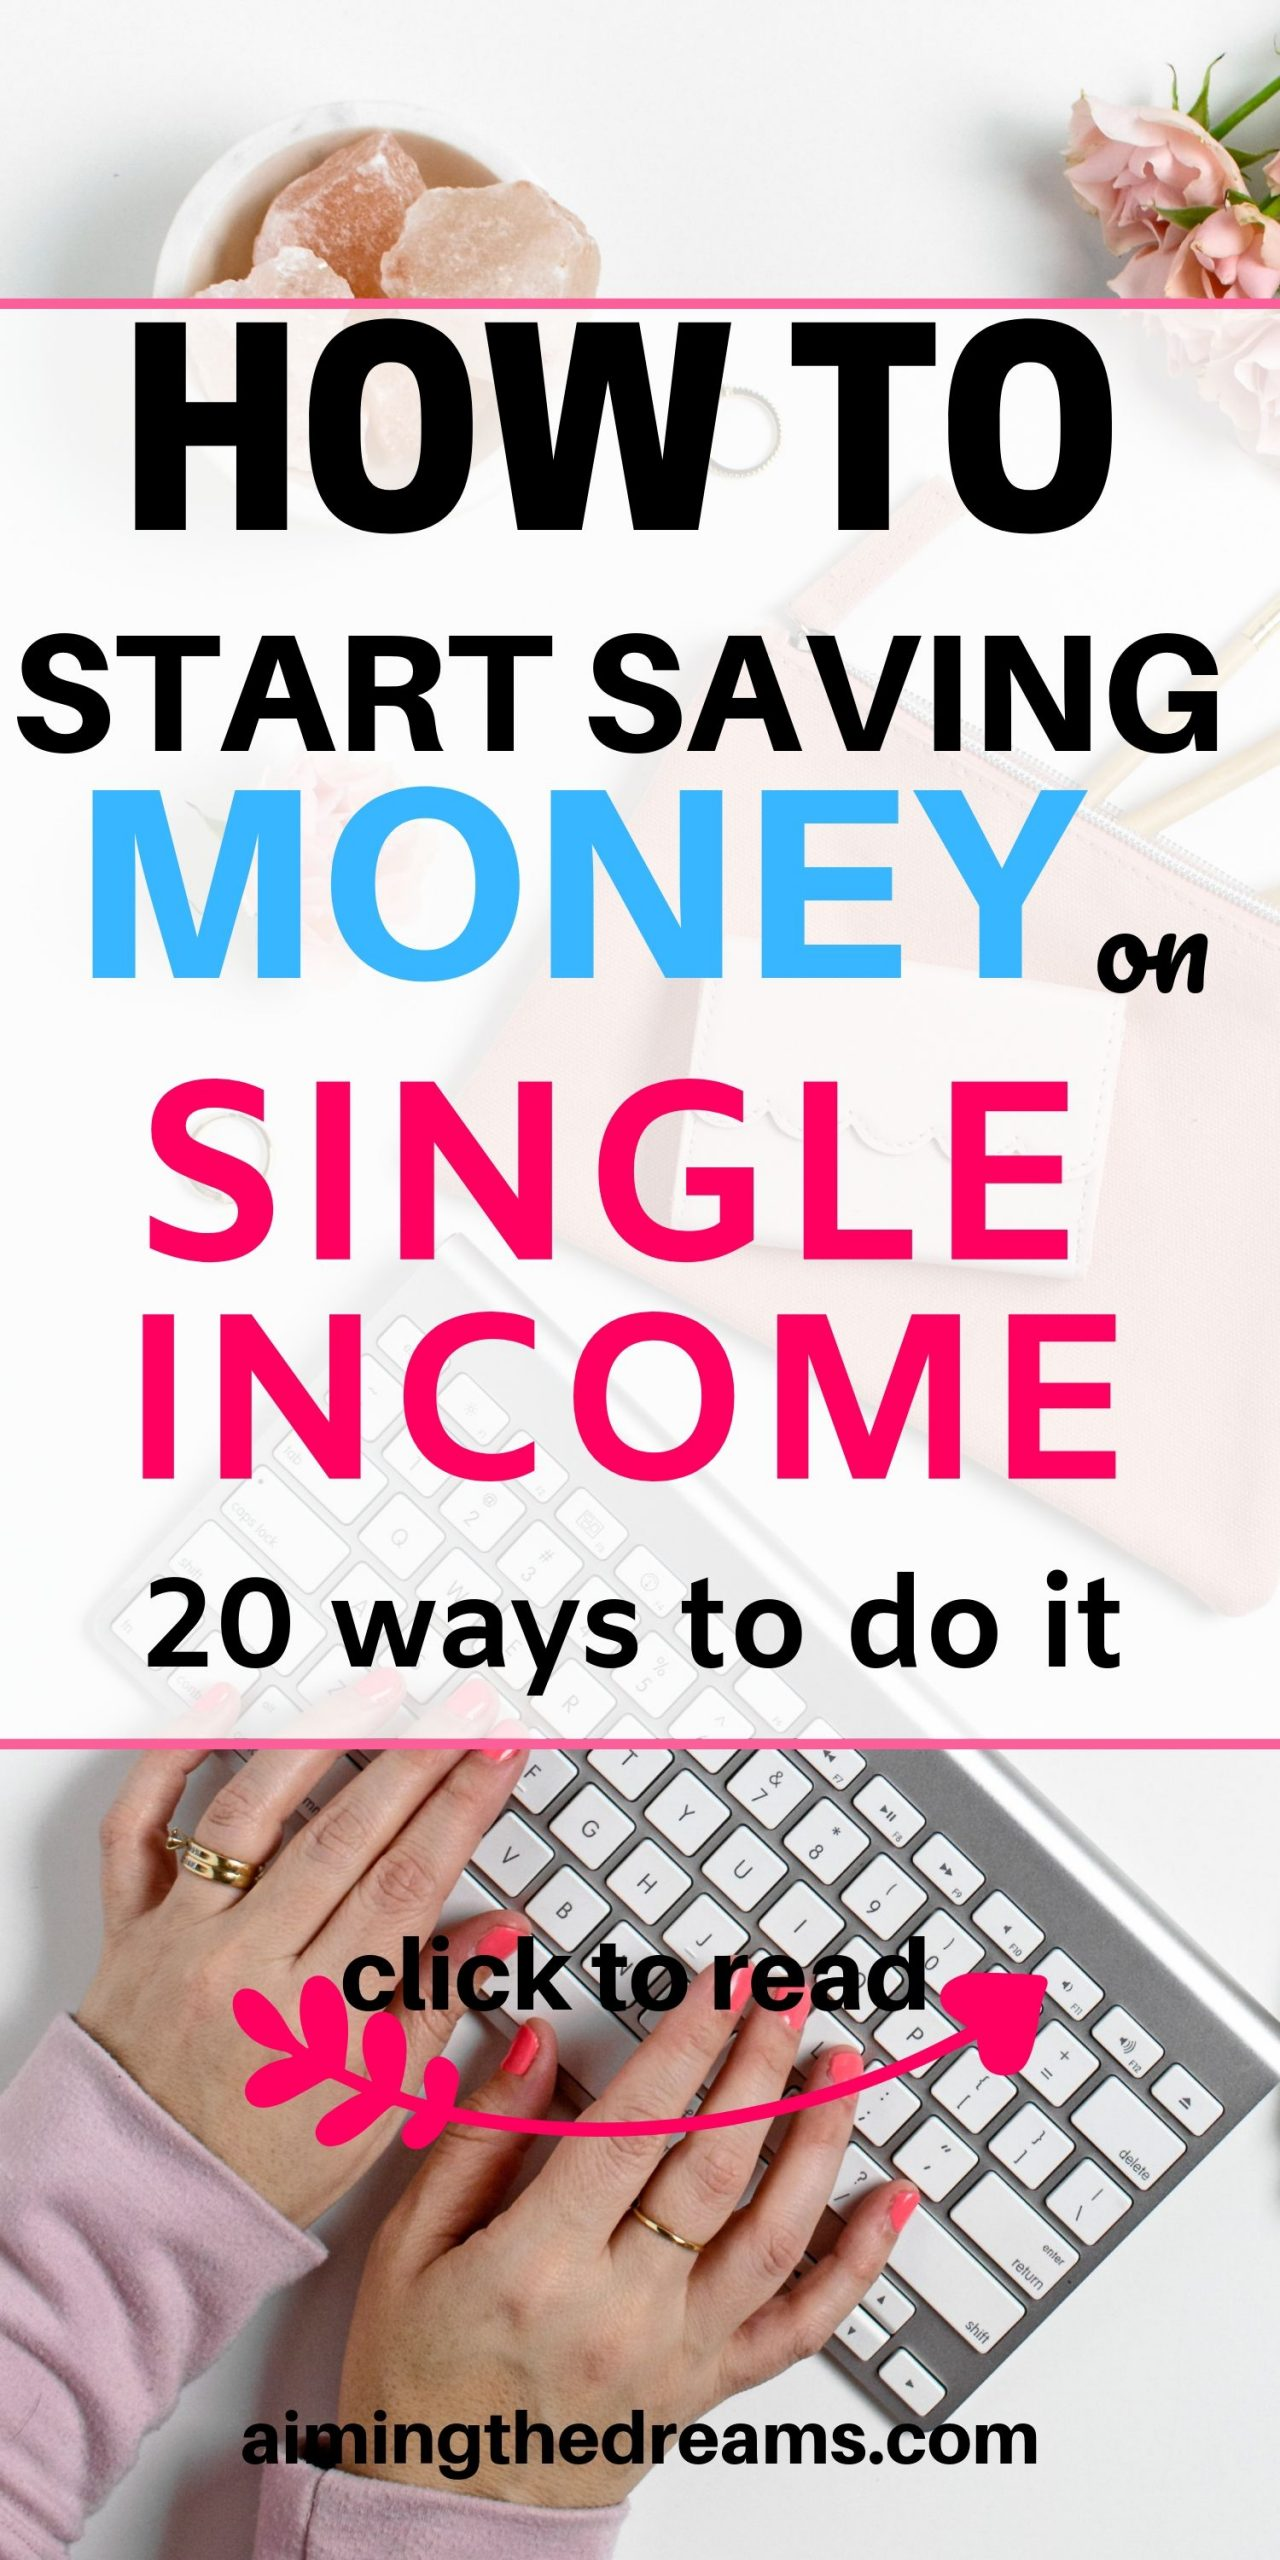 How to start saving money on single income. Start budgeting, sidehustles and make money as extra income if you want to save money.